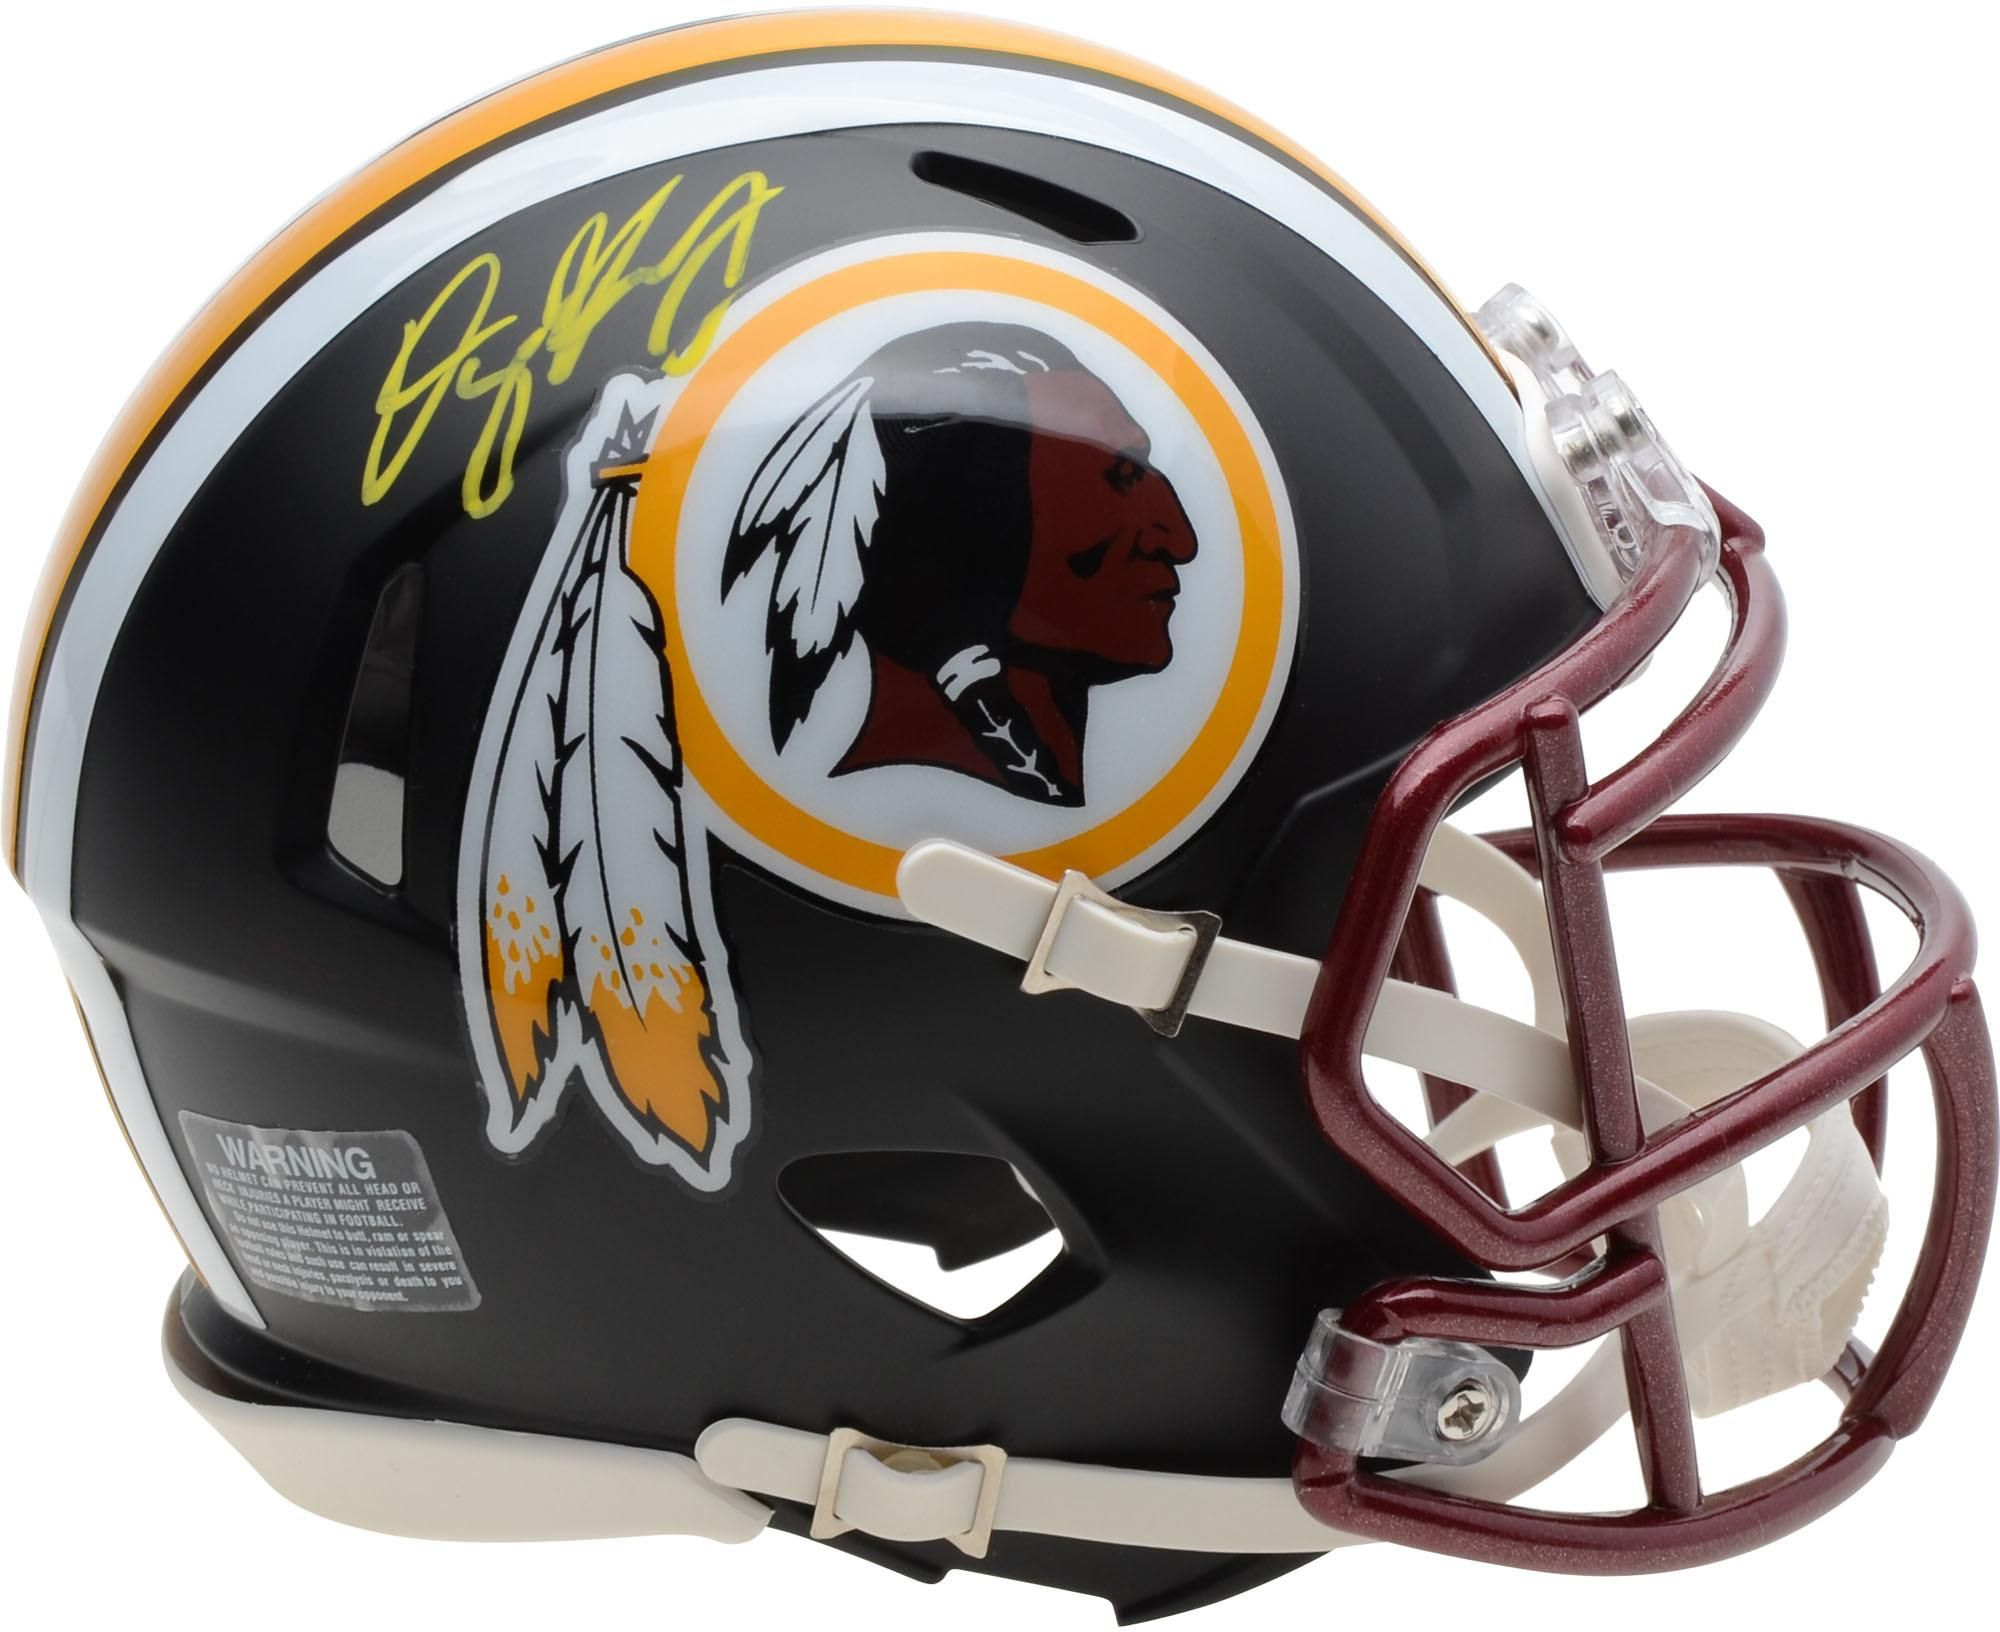 Pin on Official Authentic Autographed Football Helmets for Sale